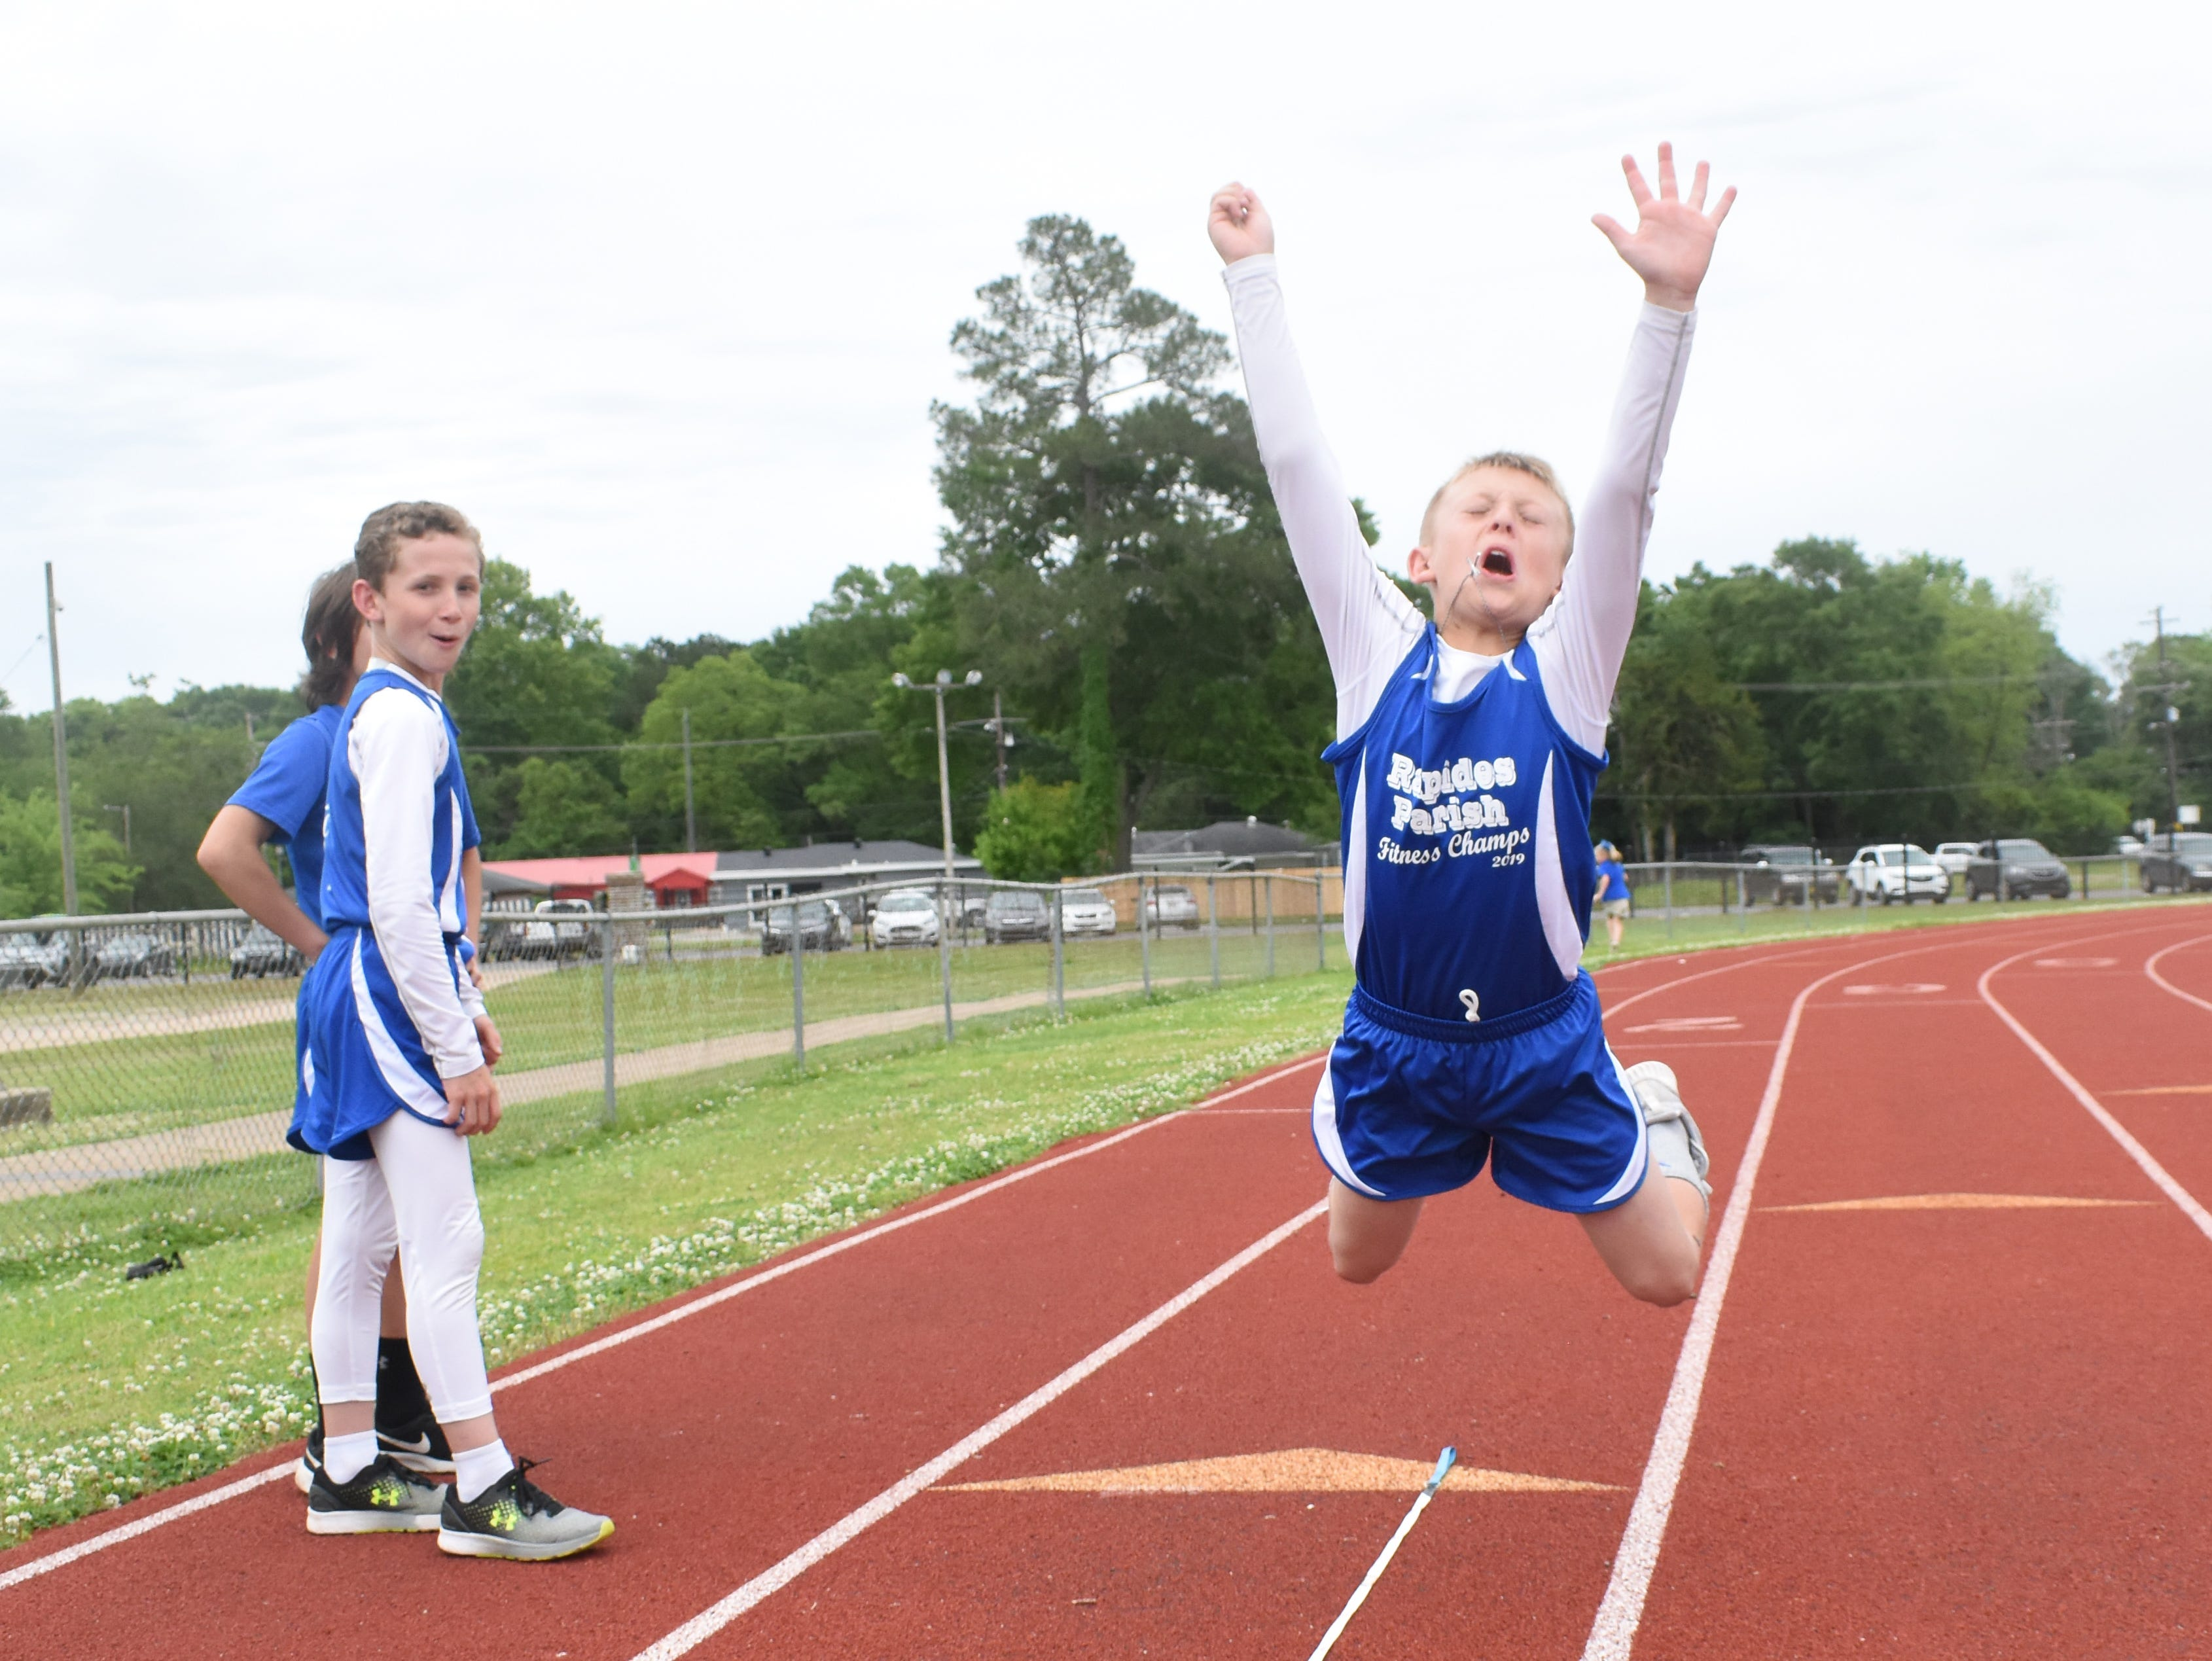 Jaxon Ross (left) of Nachman Elementary School complete a long jump. Jaxon is part the 2019 Rapides Parish Fitness Team. Jaxon and five other Rapides Parish elementary school students will compete in the 2019 State Championship Fitness Meet to be held Saturday, April 27, 2019 at Alexandria Senior High School. The meet is part of the Governor's Council on Fitness and Sports. Students from throughout Louisiana will compete in seven events: 50-yard dash, sit and reach, pull-ups,  shuttle run, curl-ups (sit-ups), standing long jump, and the 600-yard run. For the past three years, the Rapides Parish Fitness Team has placed first at the meet. Dean was the highest scoring boy last year and won the title of 2018 Mr. Fitness for the State of Louisiana. The meet will be from 10 a.m. to 2 p.m.